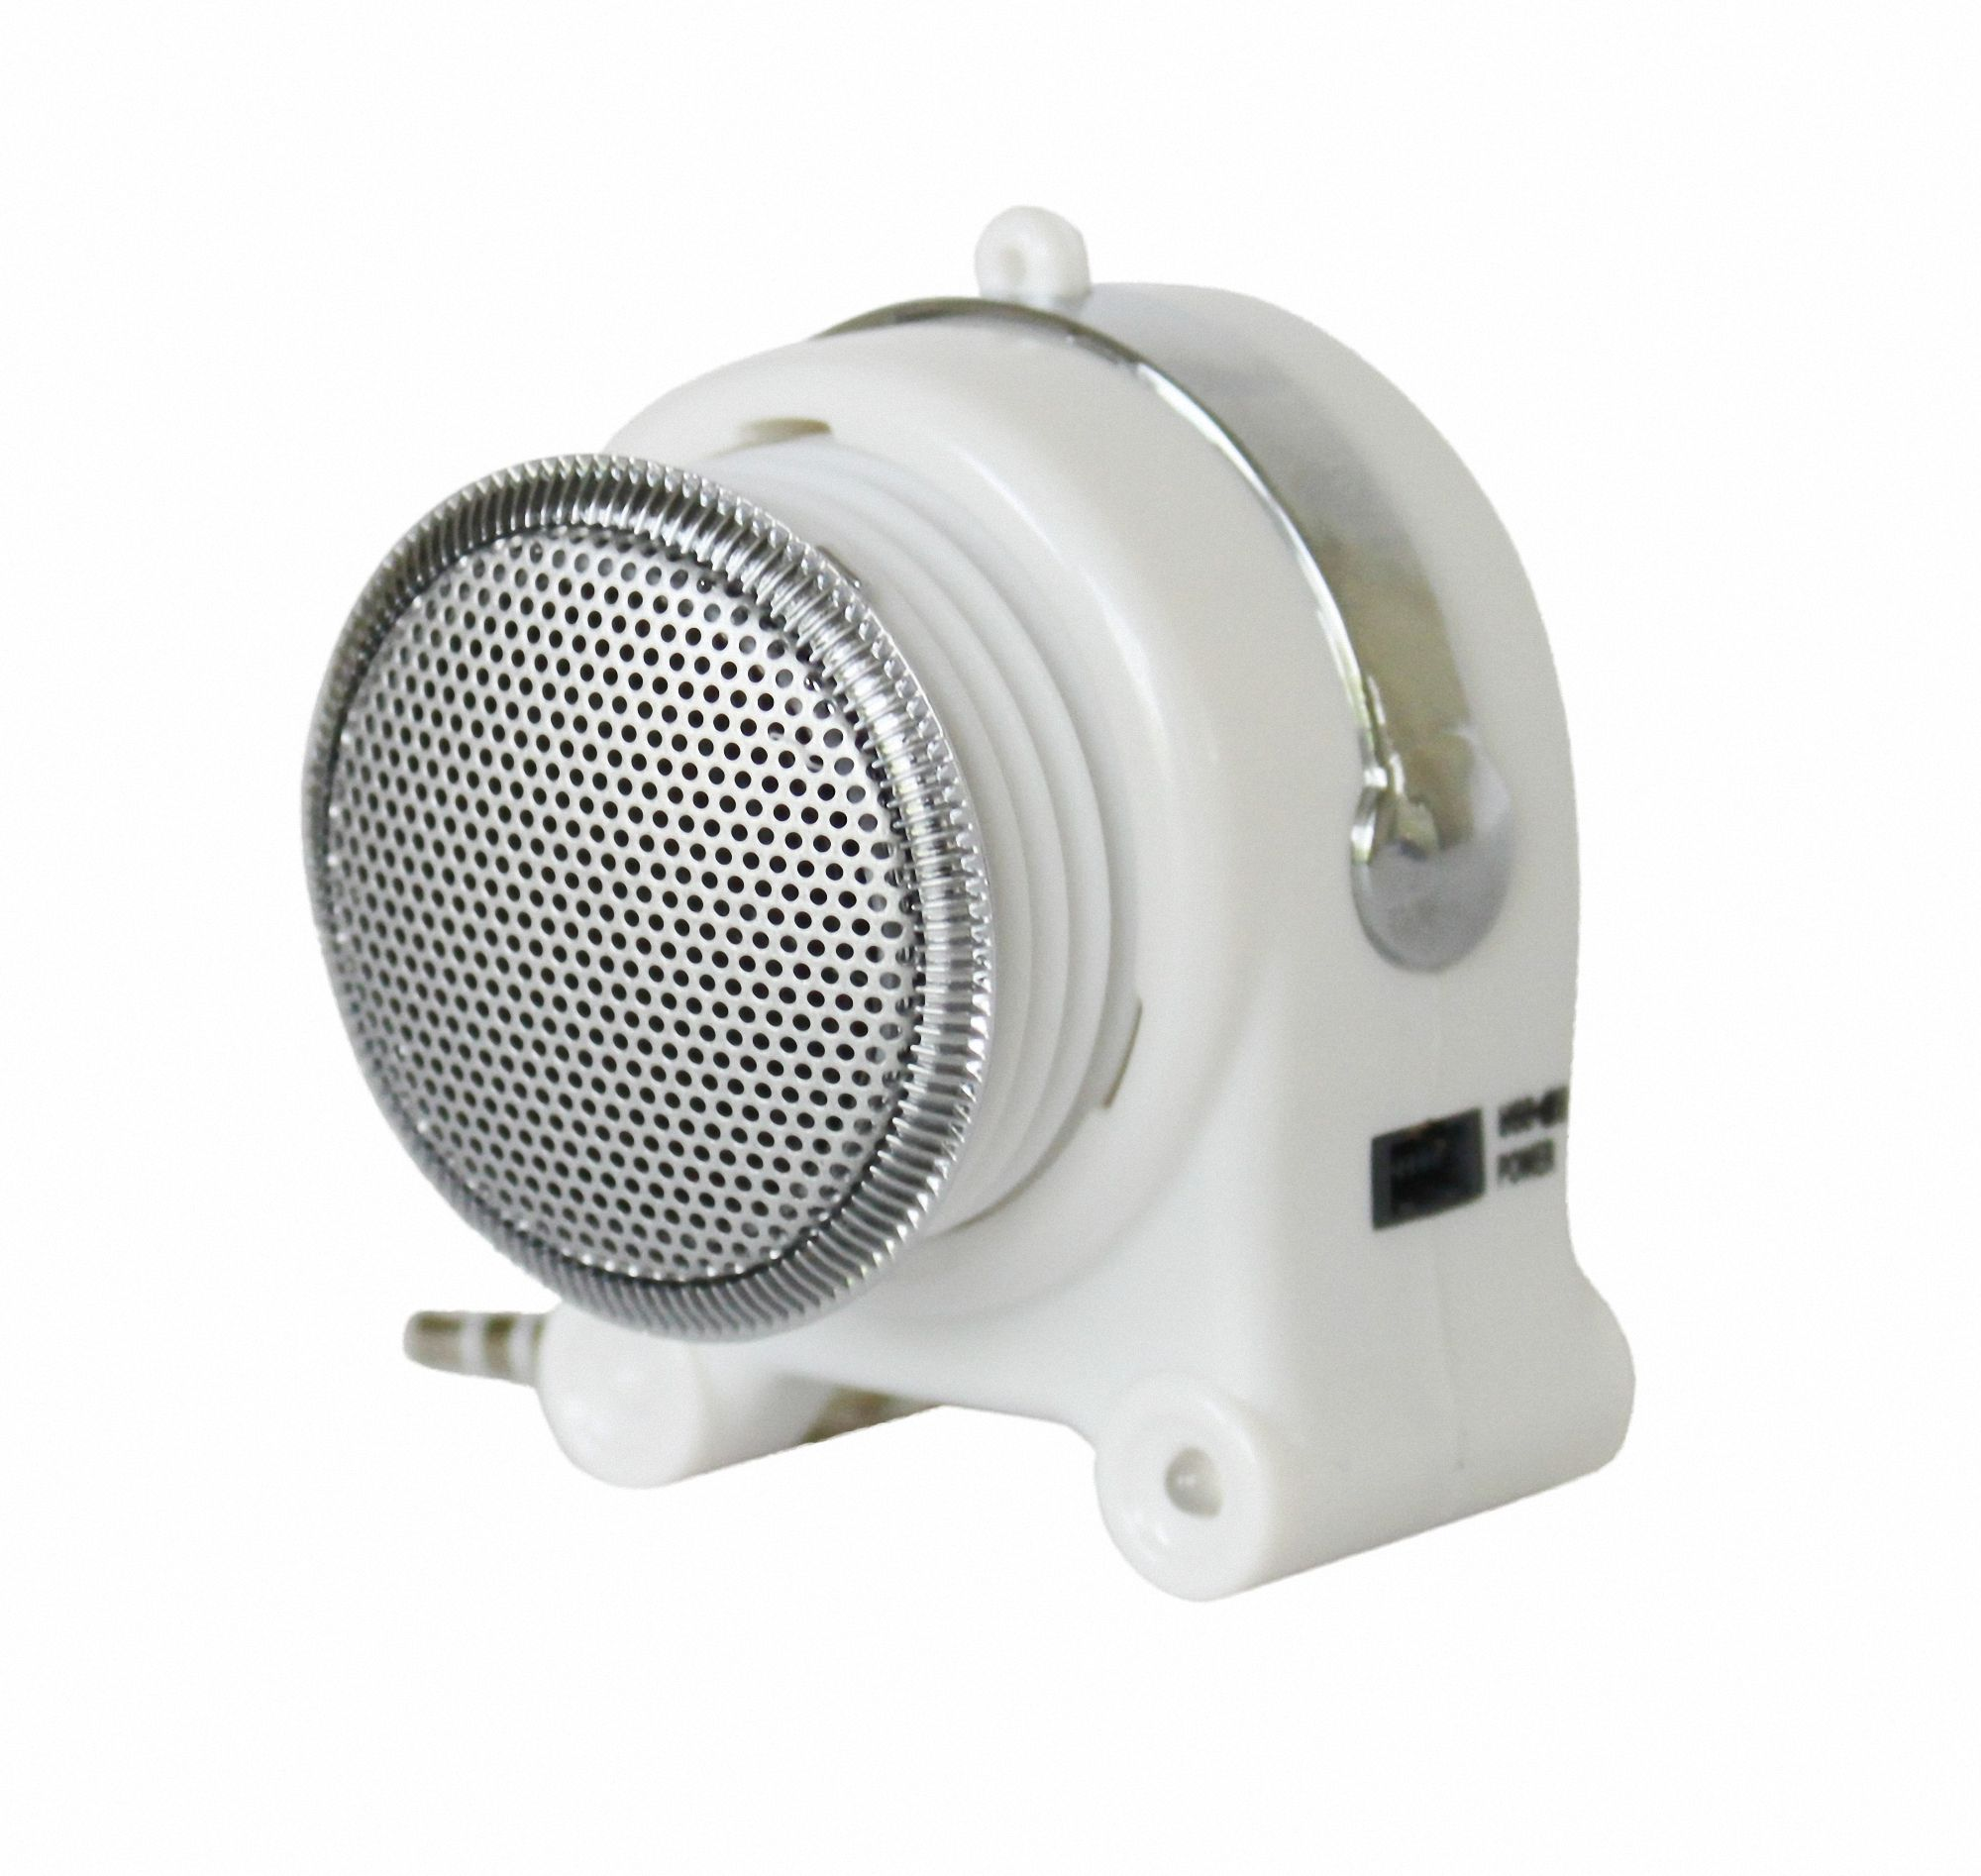 Mini Stereo Speaker With Extended Booster Sound Re-Chargeable Battery